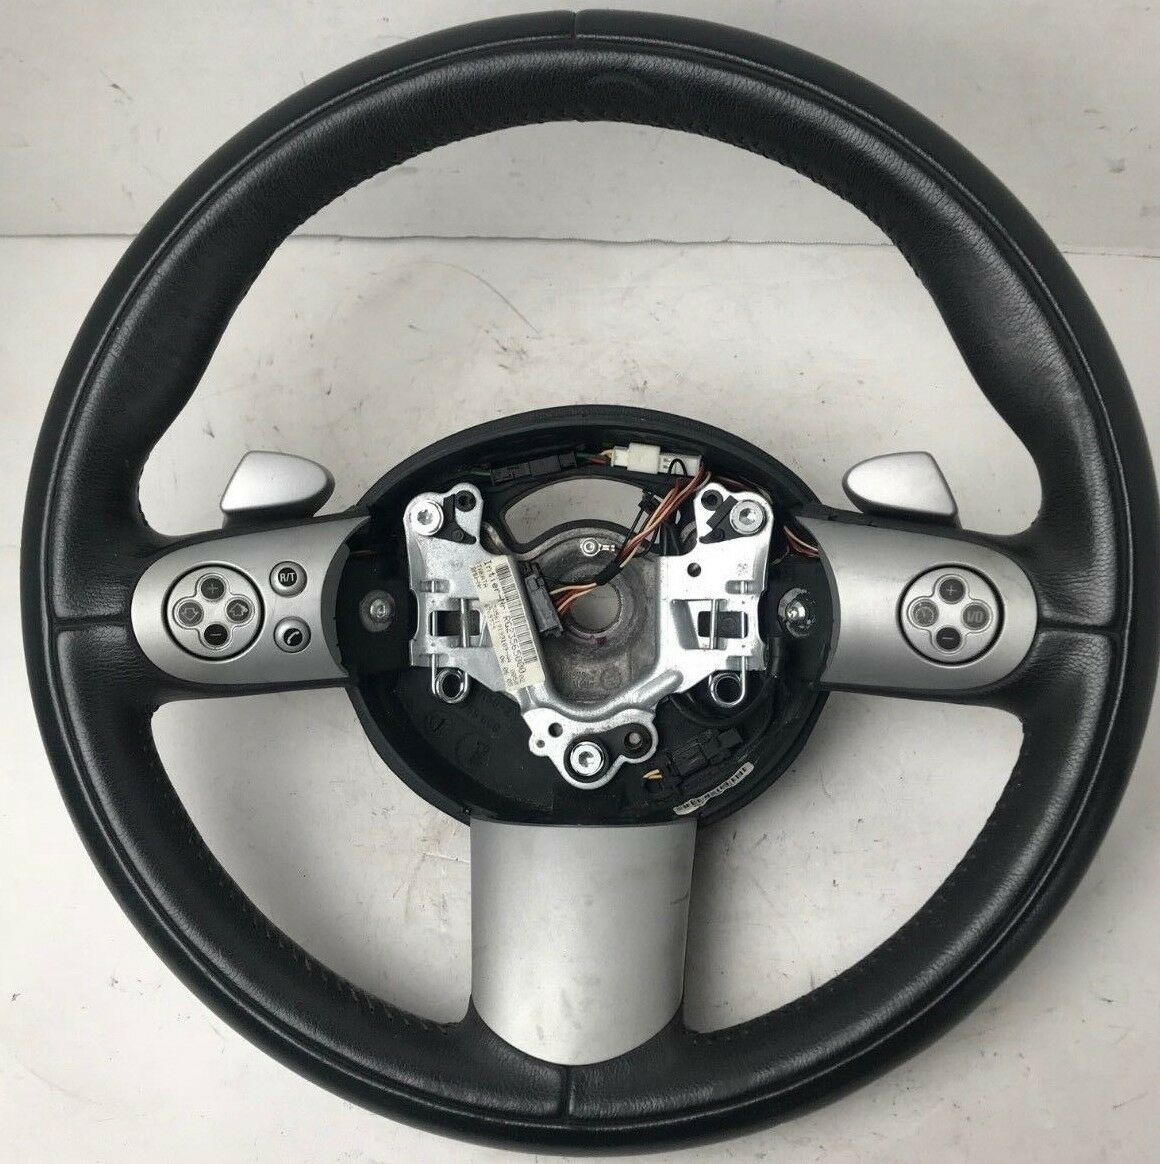 2002-2008 MINI COOPER R50 R52 R53 SPORT STEERING WHEEL CONTROLS SHIFT PEDAL OEM